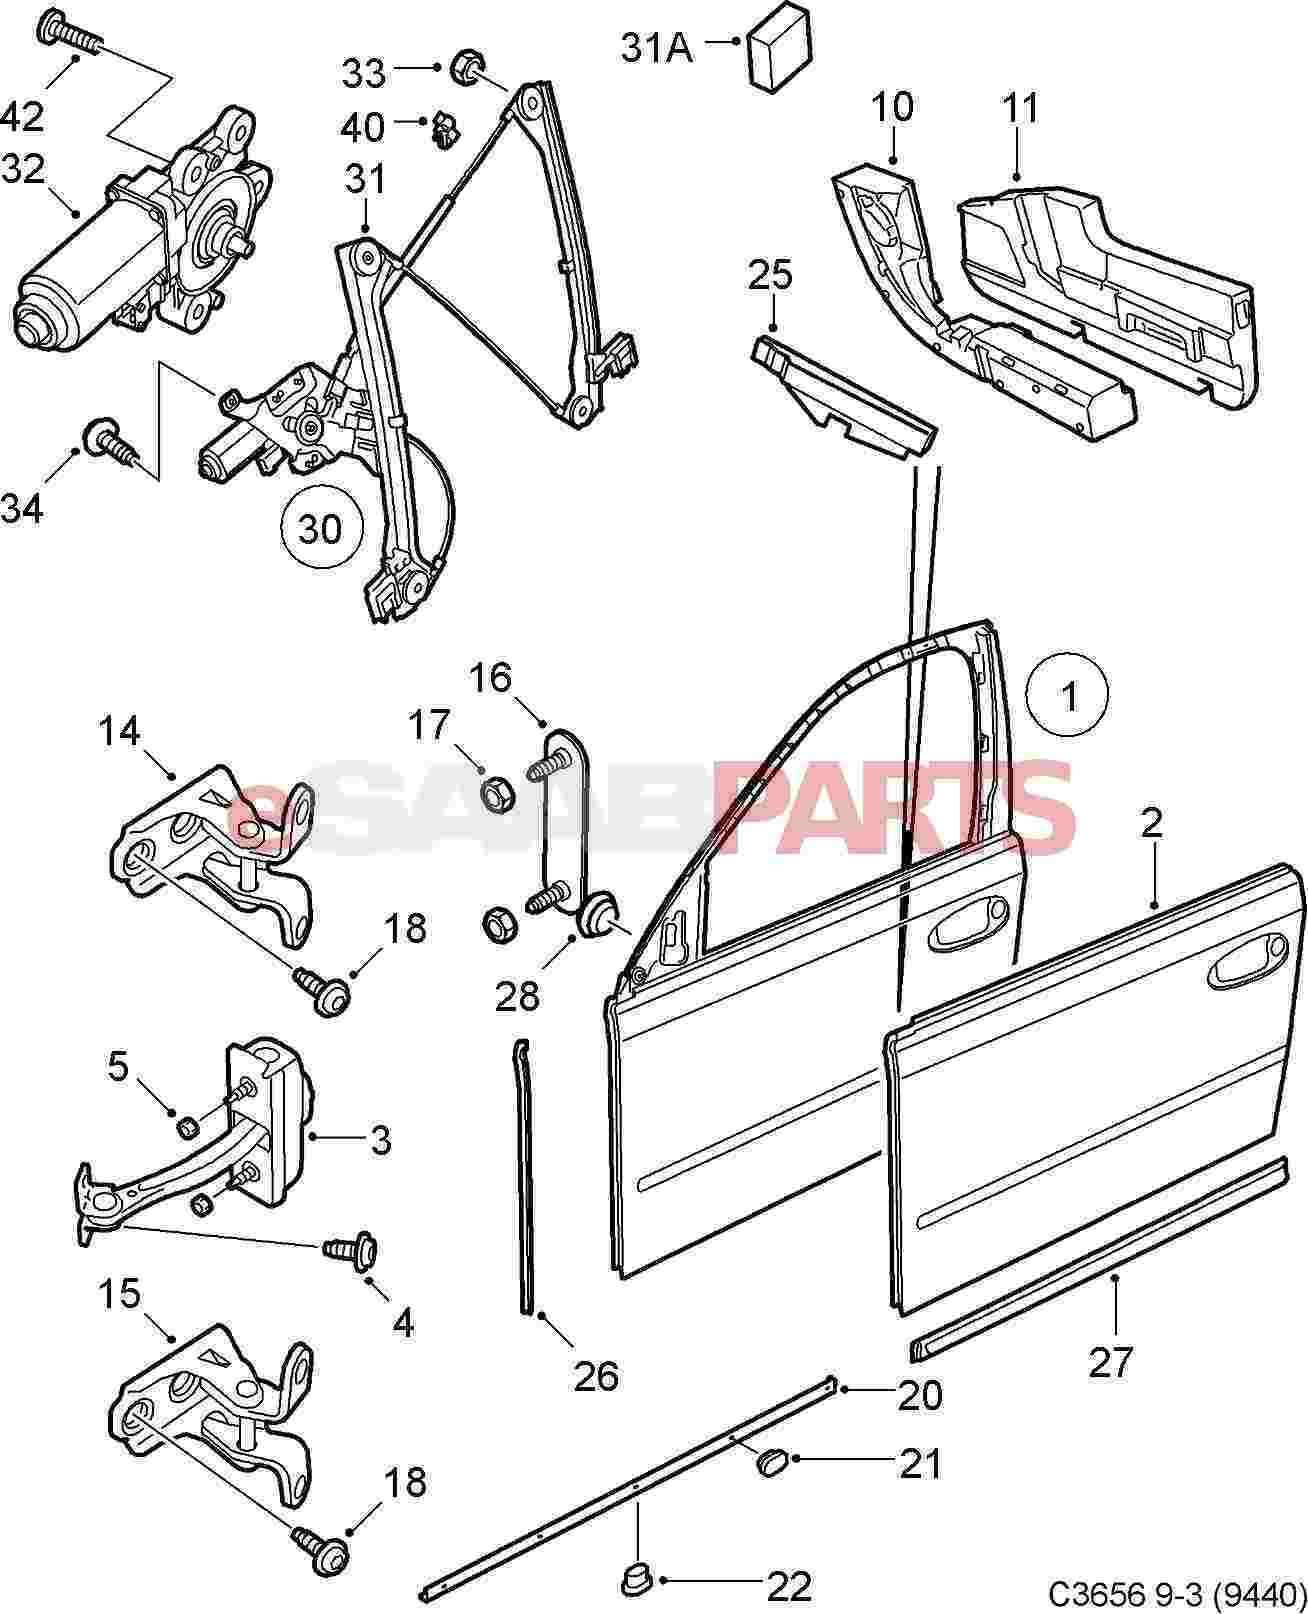 Nissan 720 Ignition Coil Wiring Diagram, Nissan, Get Free